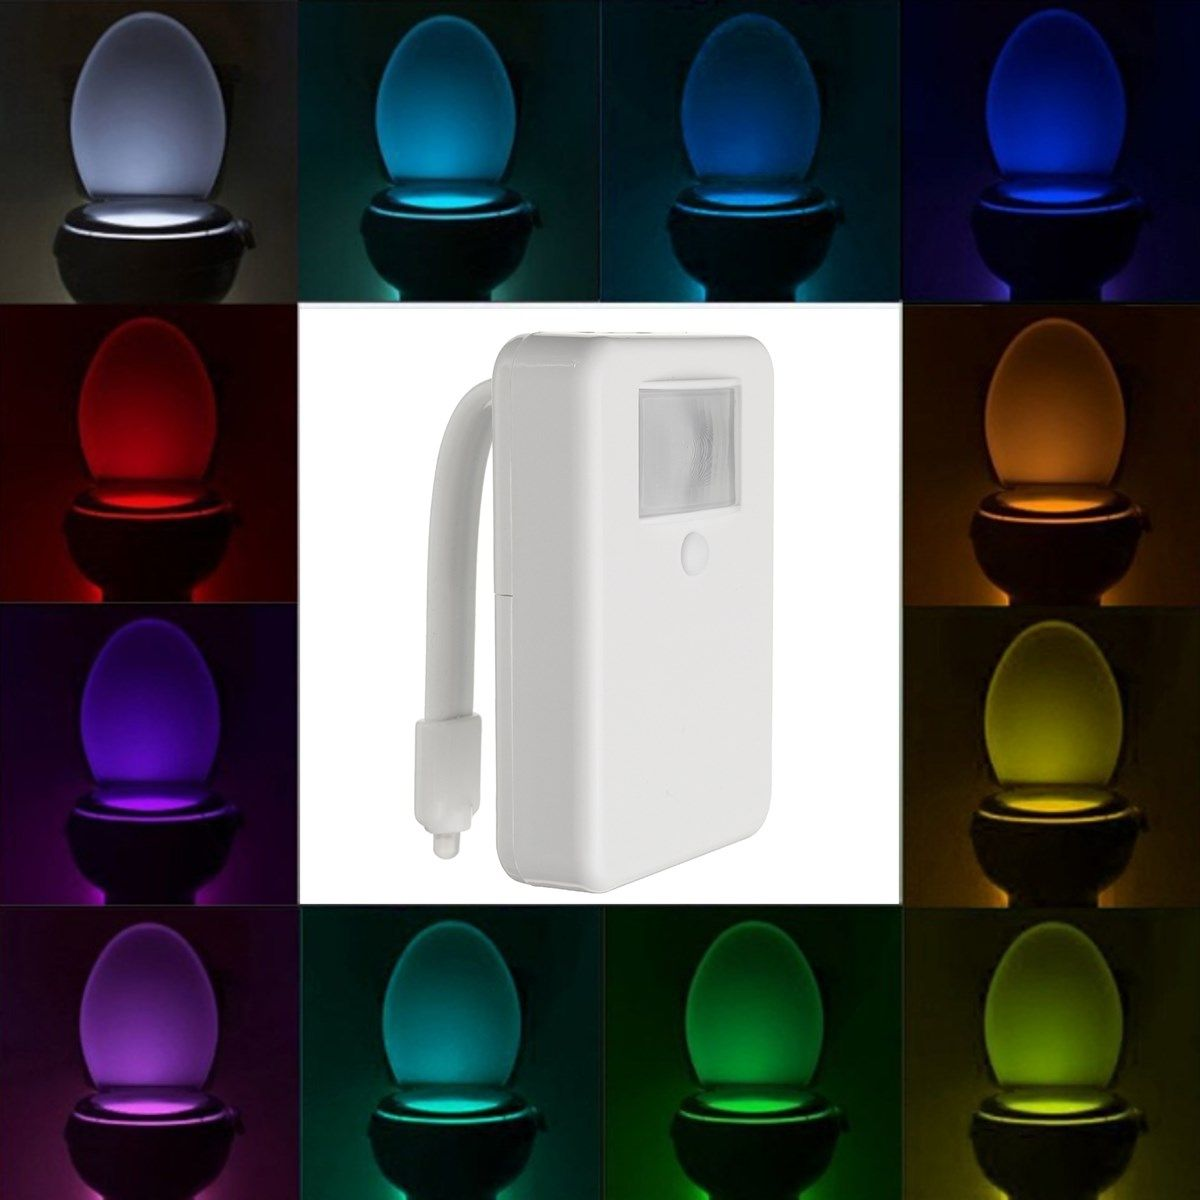 16 color motion activated led toilet sensor night light bowl 16 color motion activated led toilet sensor night light bowl bathroom lamp aloadofball Choice Image